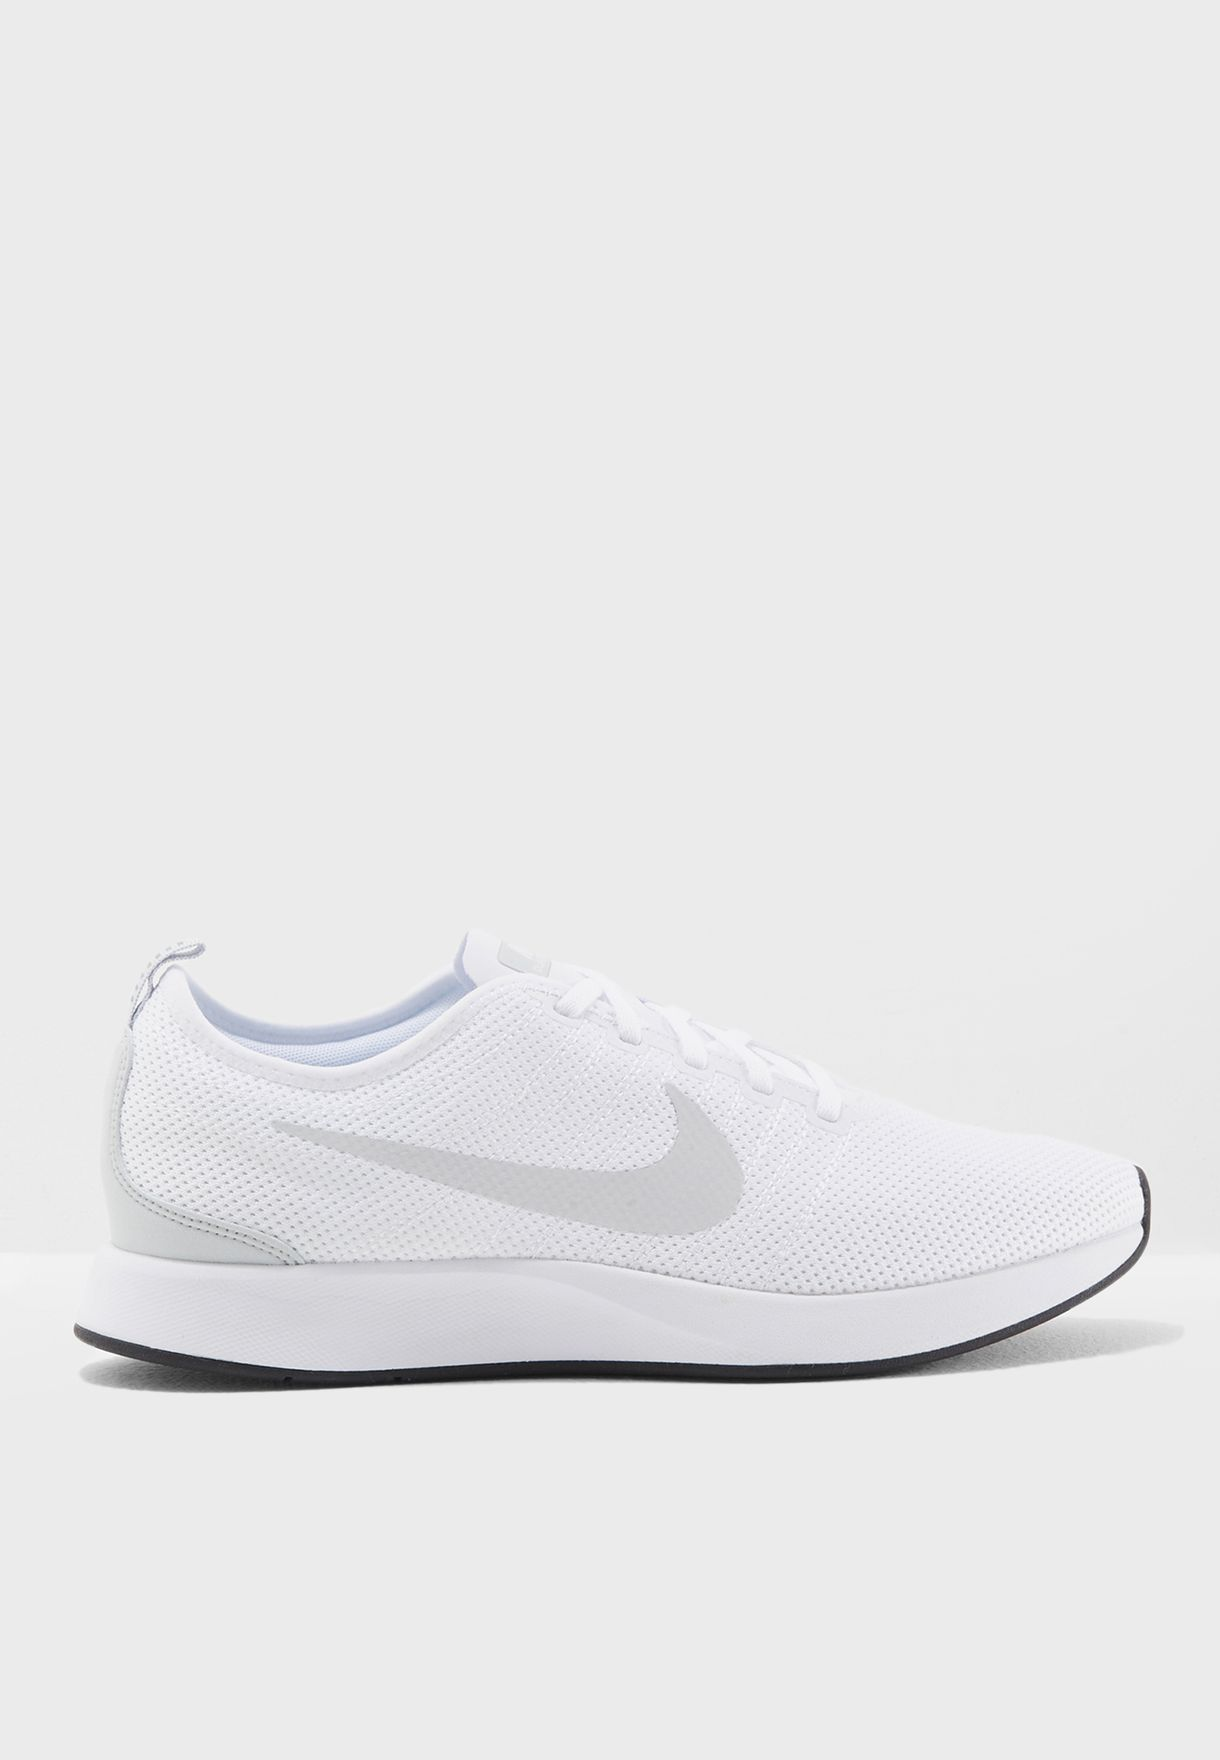 save off d6426 3f542 Shop Nike white Dualtone Racer 918227-102 for Men in Saudi ...